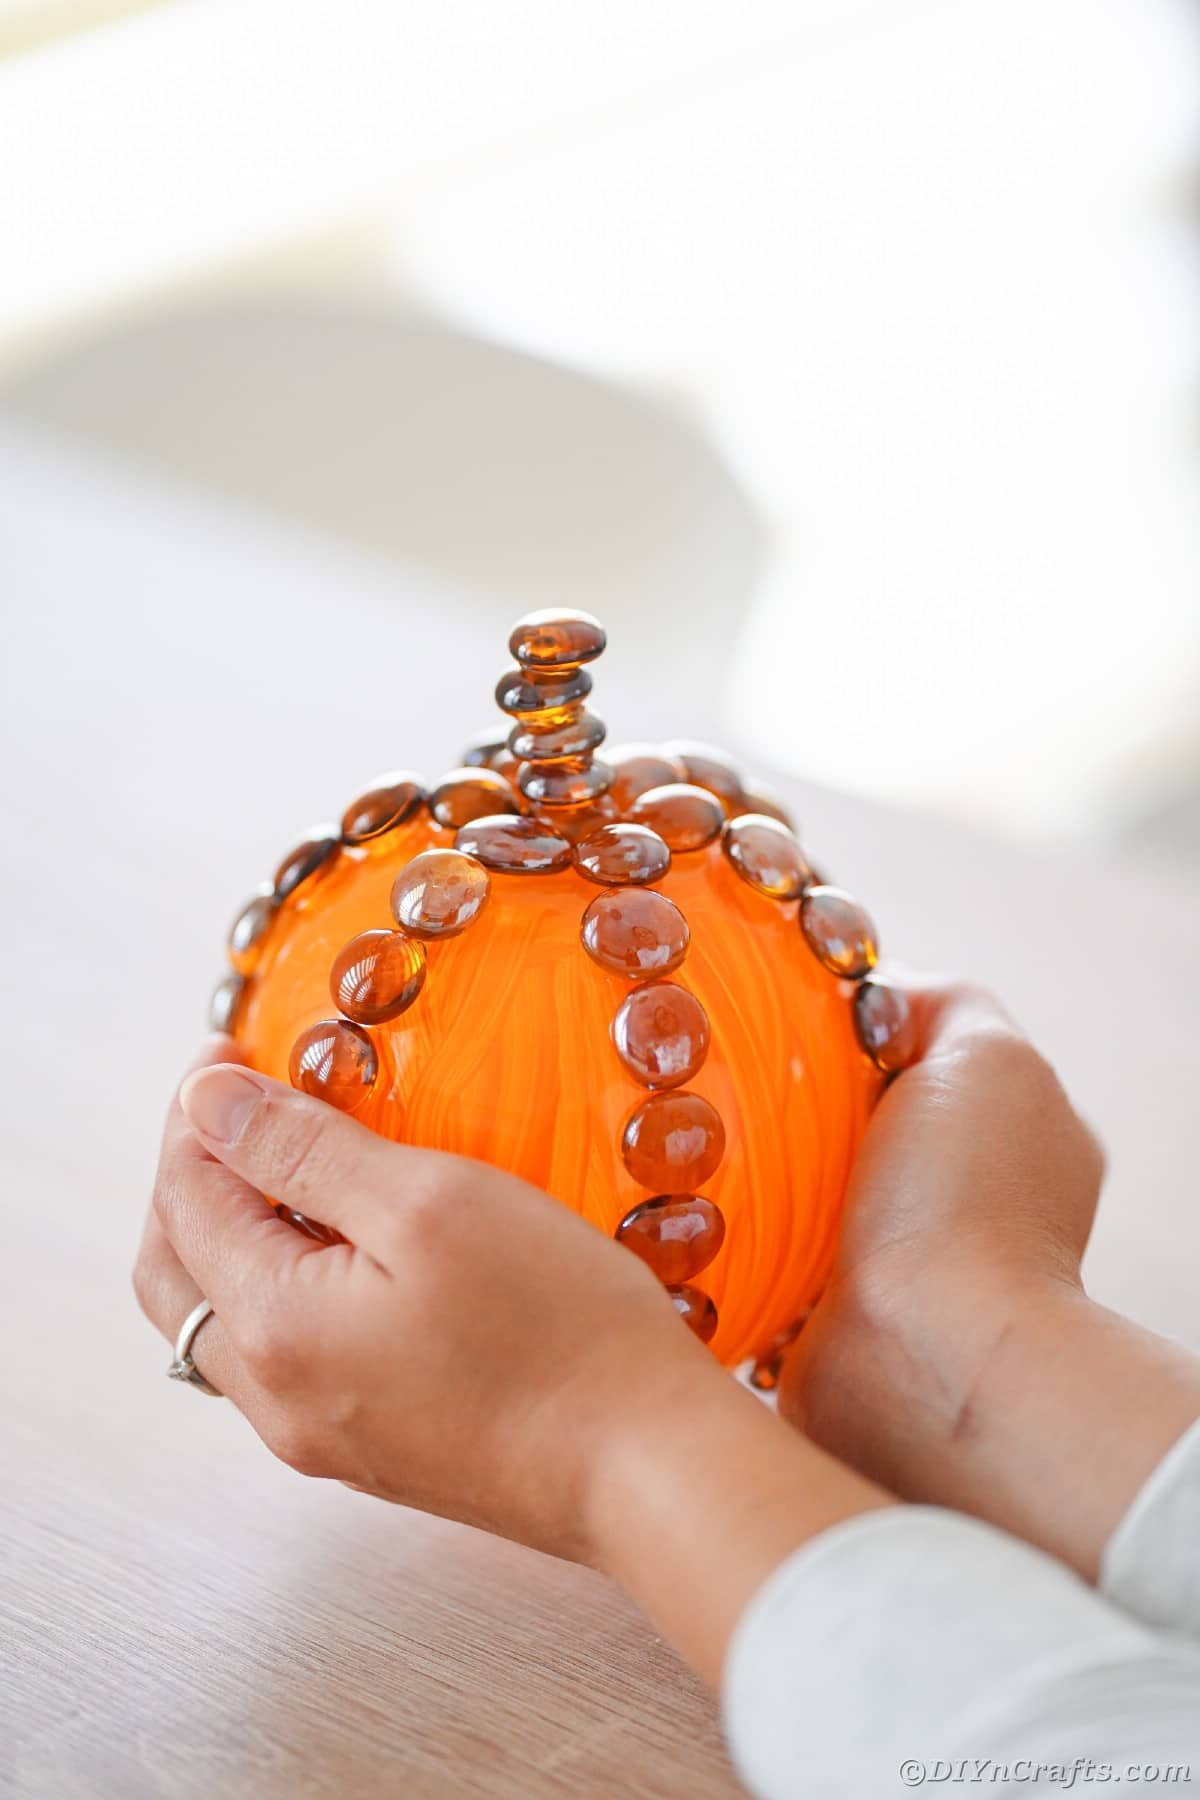 Hands holding glass pumpkin on table